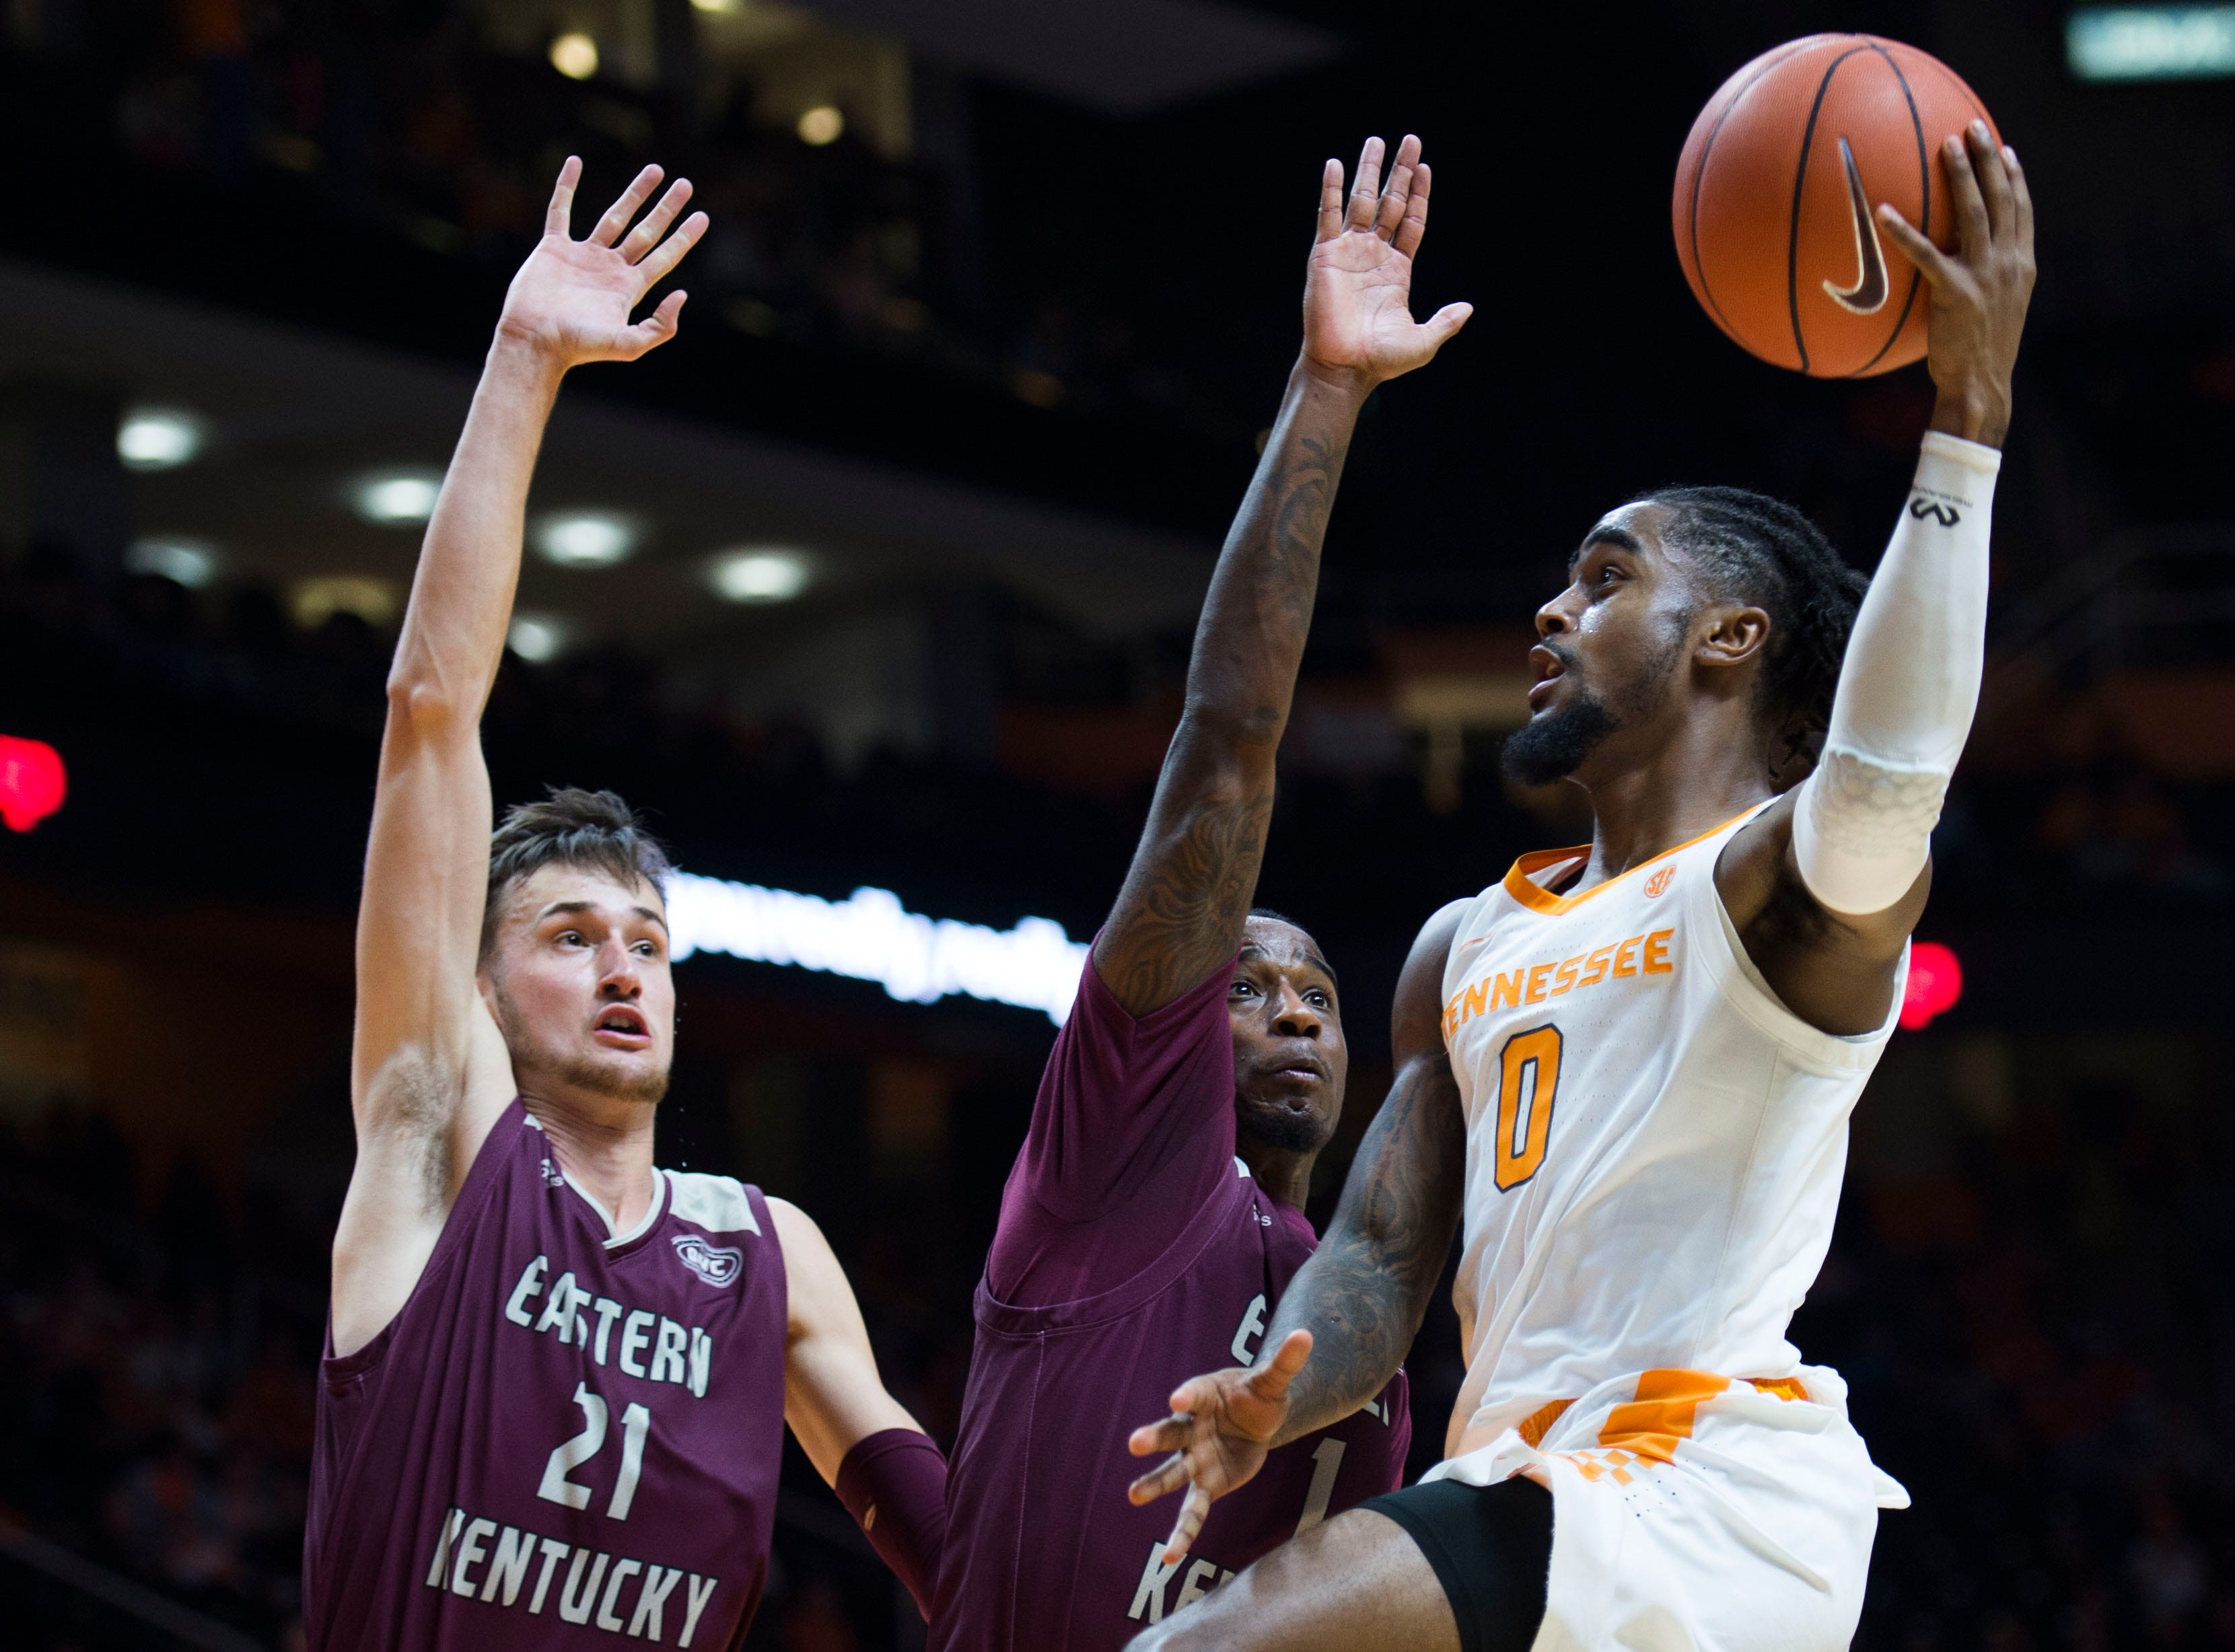 Tennessee's Jordan Bone (0) takes a shot while defended by EKU players during the second half of a NCAA men's basketball game between Tennessee and Eastern Kentucky University at Thompson-Boling Arena Wednesday, Nov. 28, 2018. Tennessee defeated EKU 95-67.